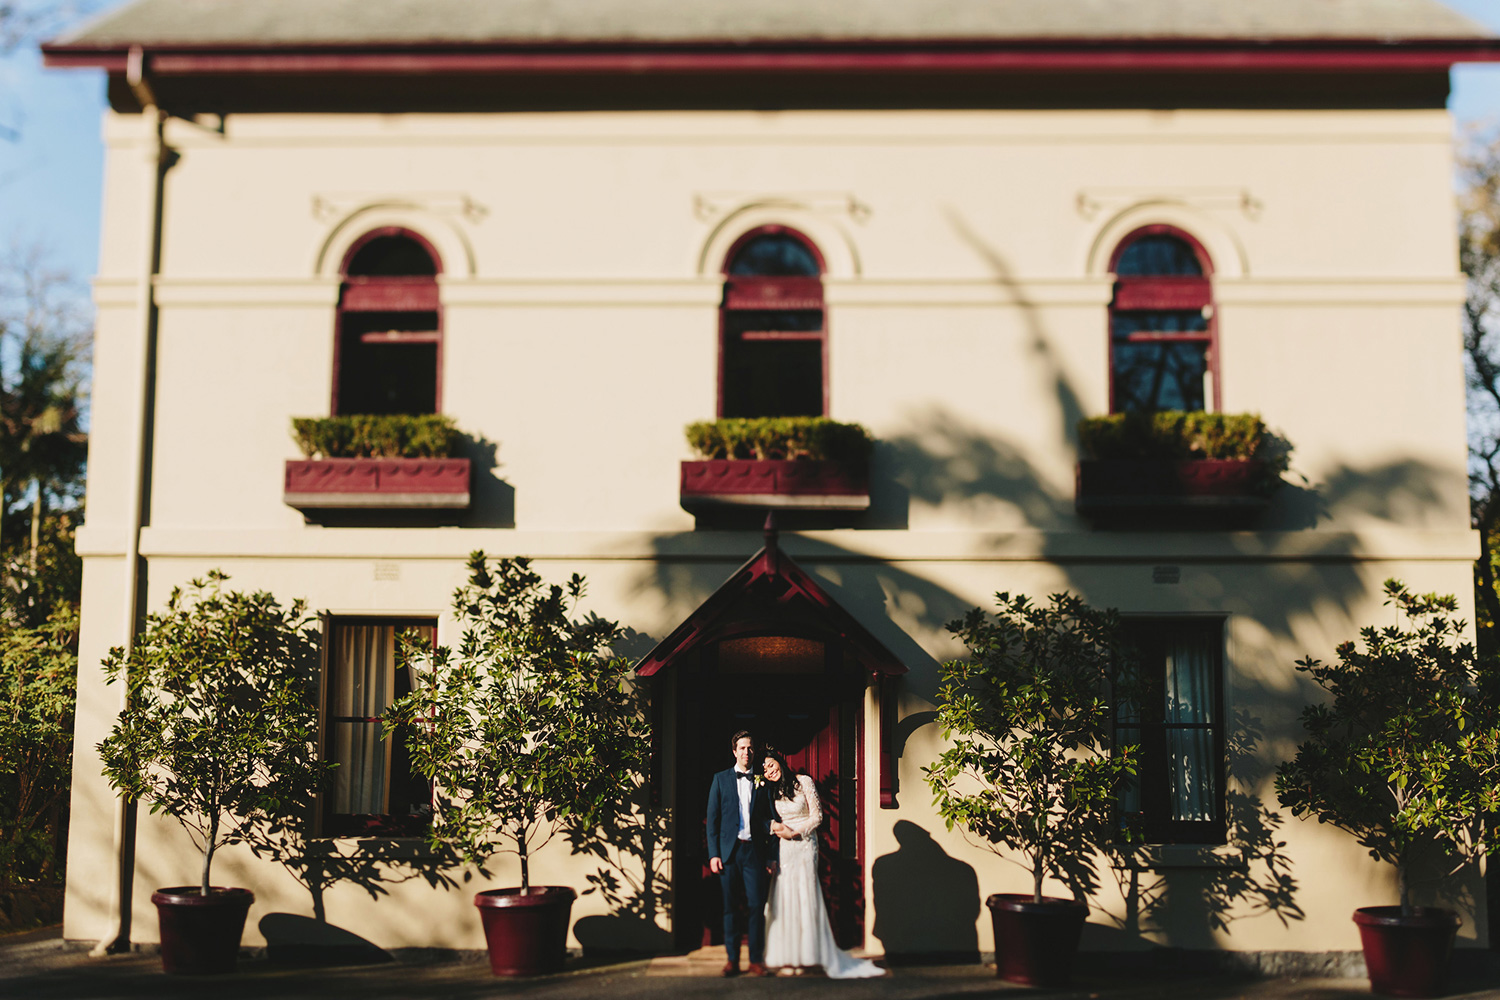 066-Sayher-&-Amelia-Melbourne-Wedding.jpg